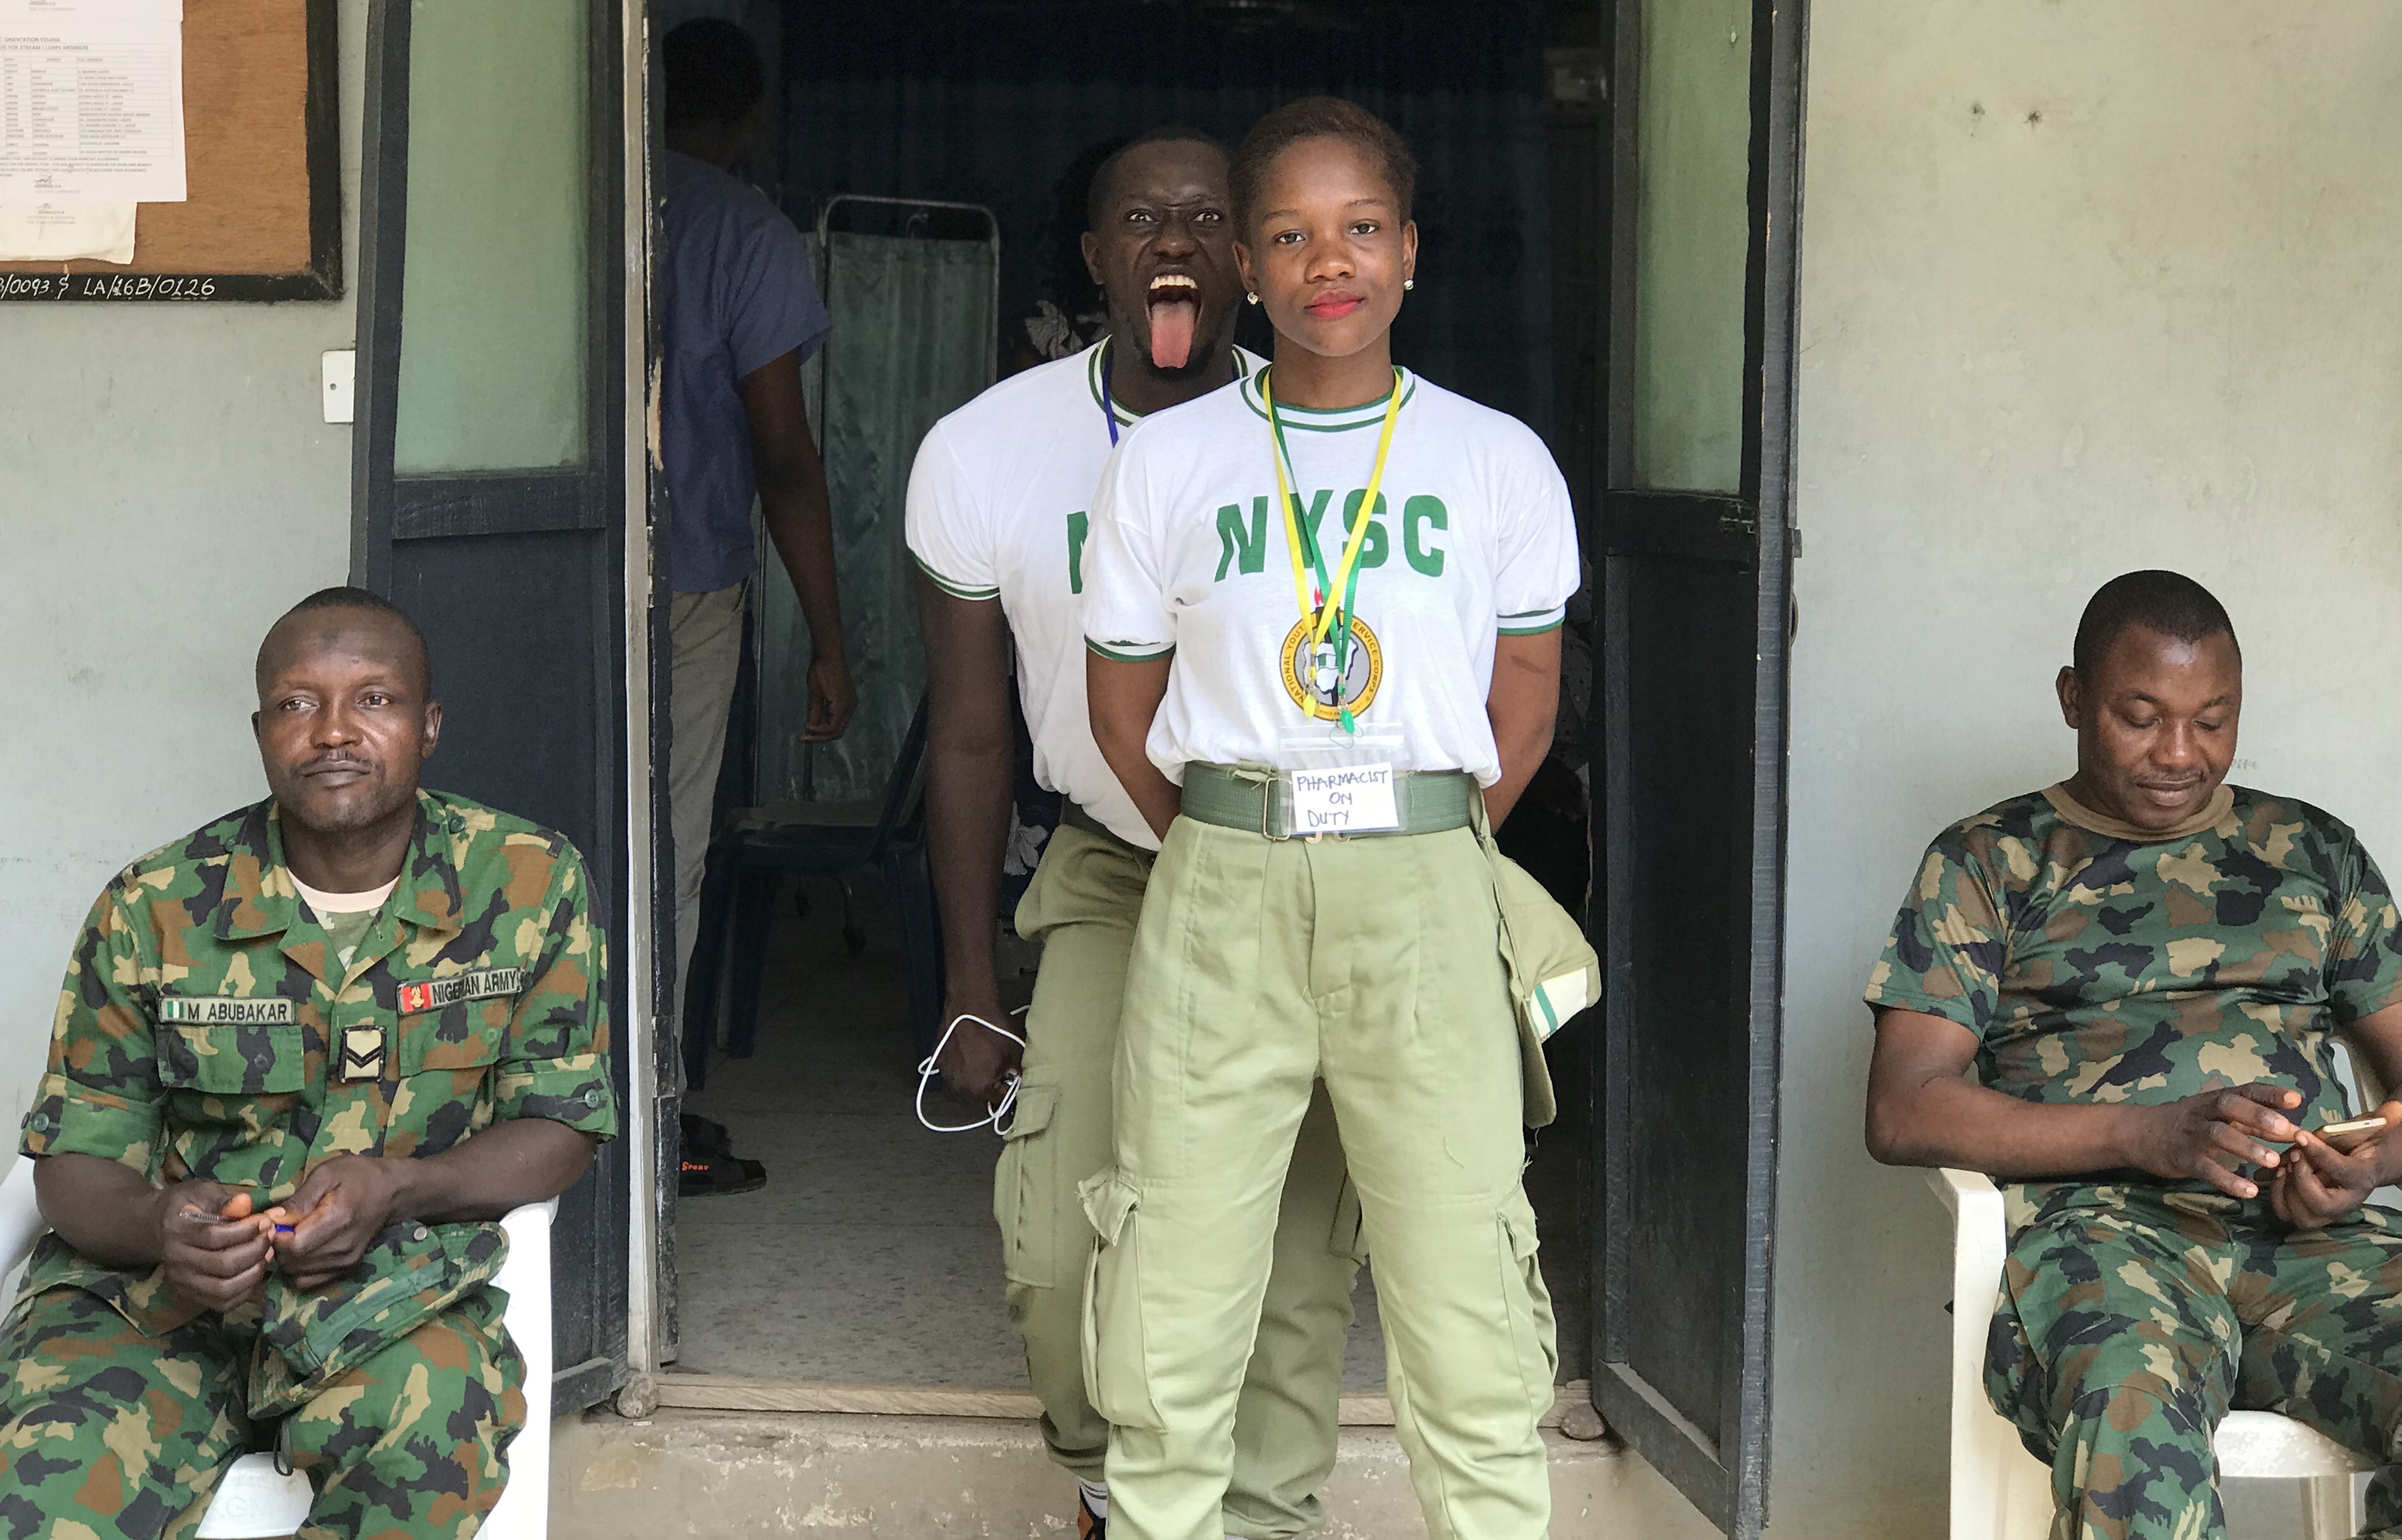 NYSC corps member with soldiers in Lagos camp